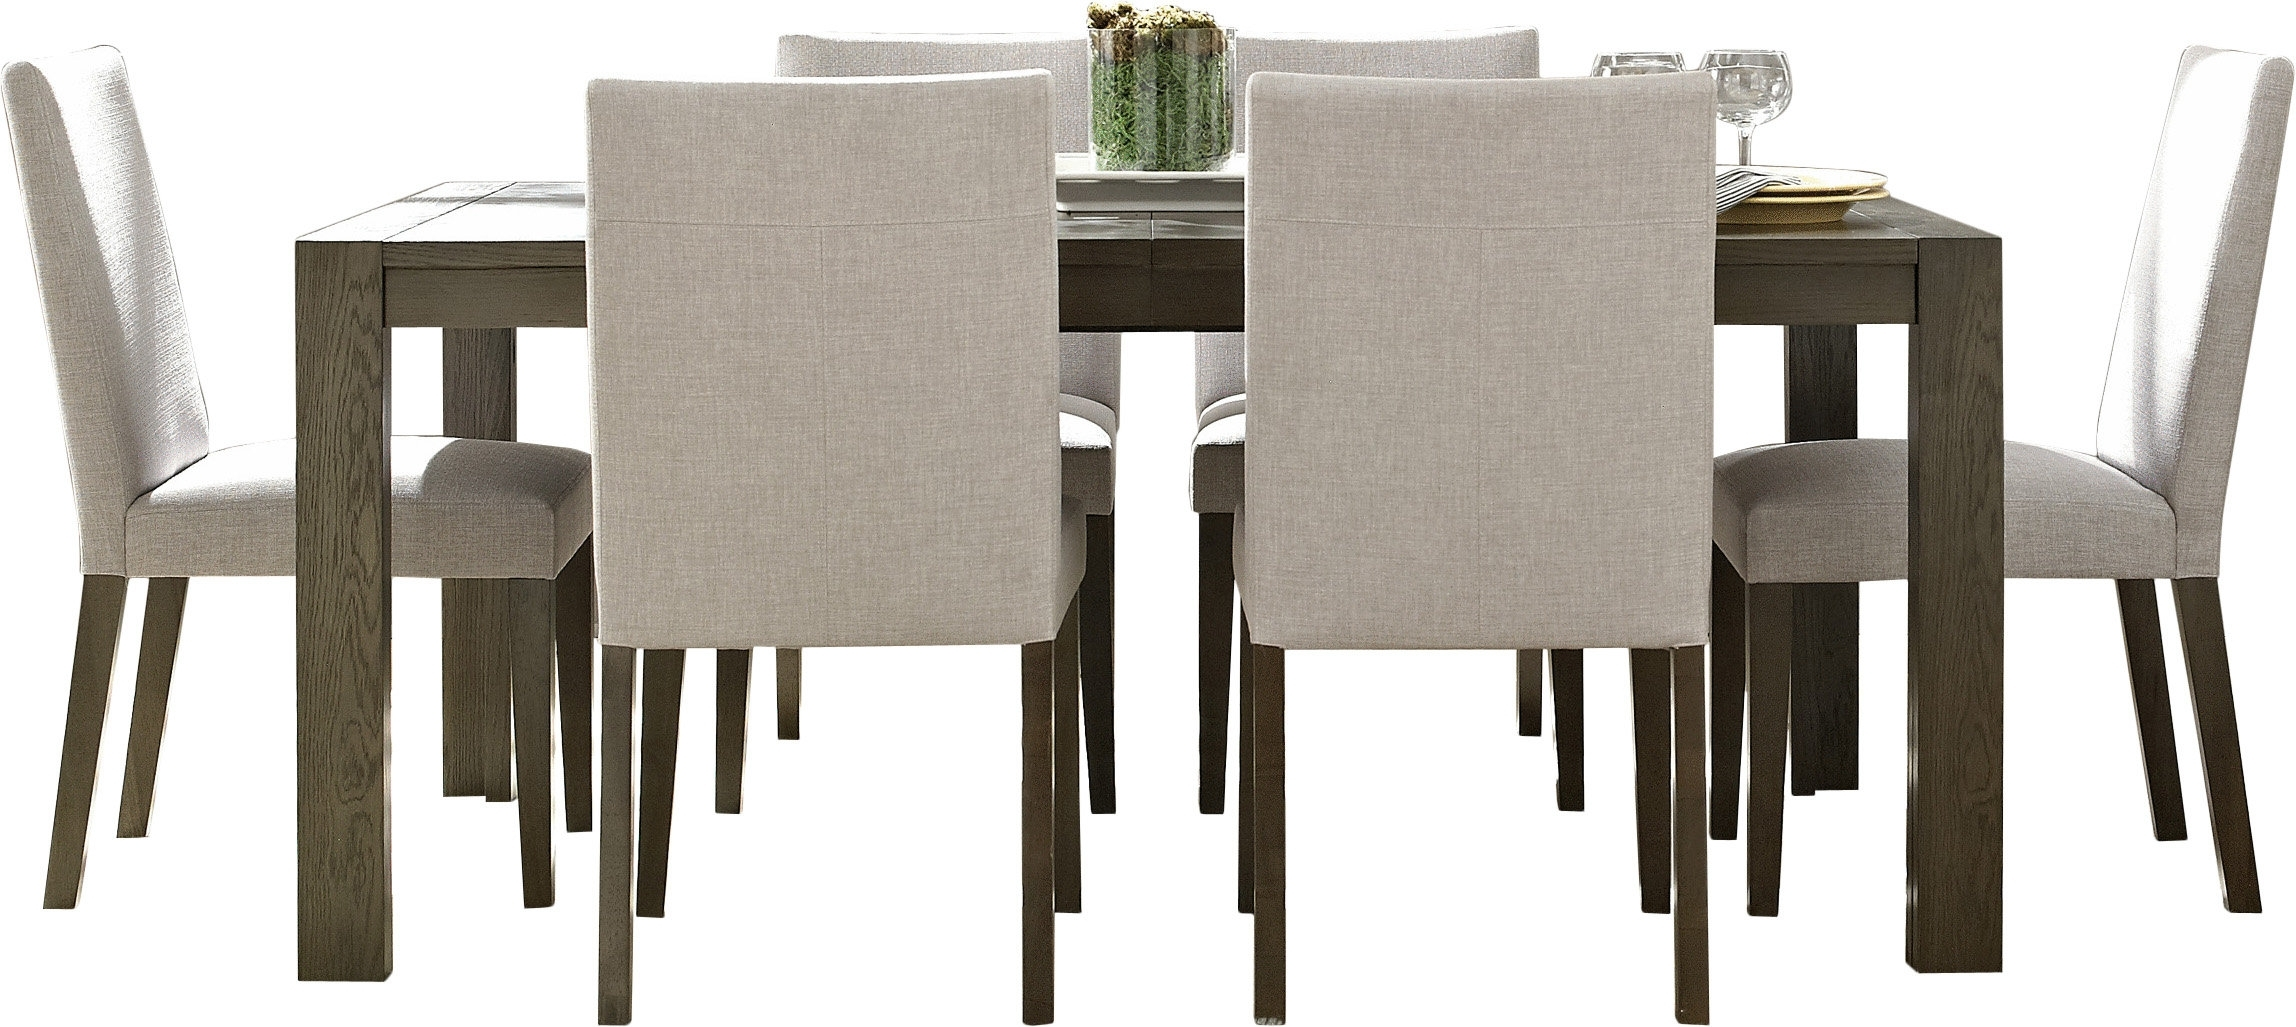 Wade Logan Girard 7 Piece Dining Set & Reviews | Wayfair Inside Most Popular Logan 7 Piece Dining Sets (Image 17 of 20)